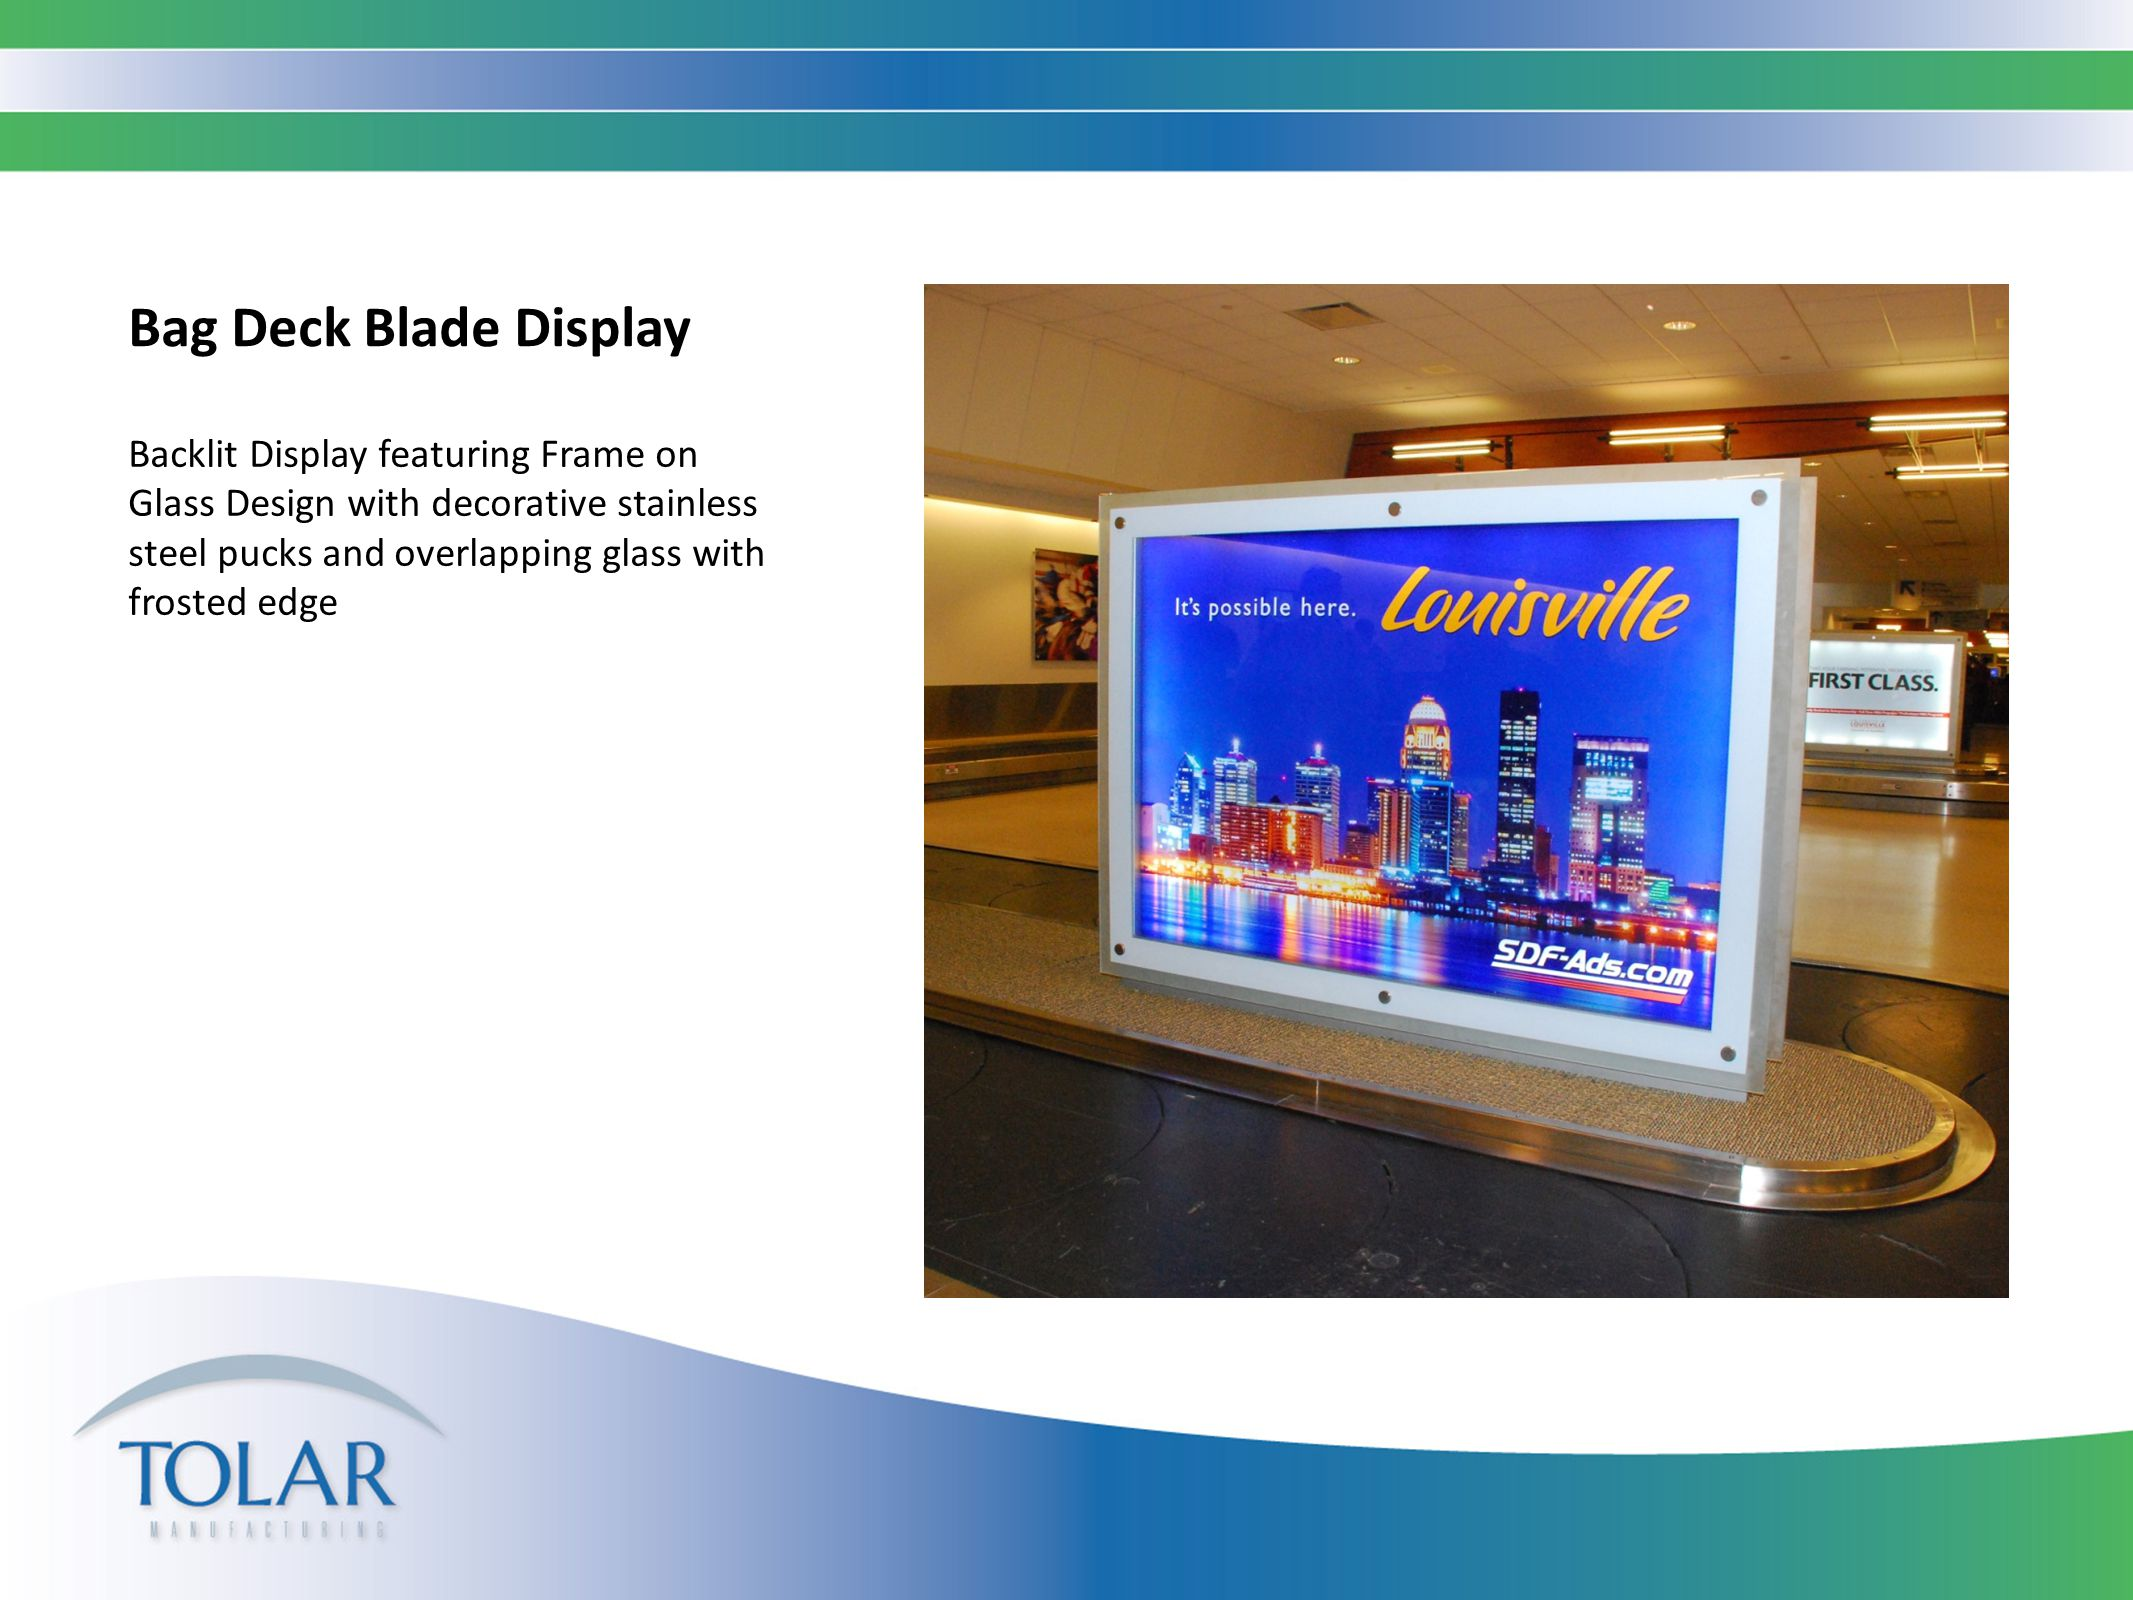 Bag Deck Blade Display Backlit Display featuring Frame on Glass Design with decorative stainless steel pucks and overlapping glass with frosted edge